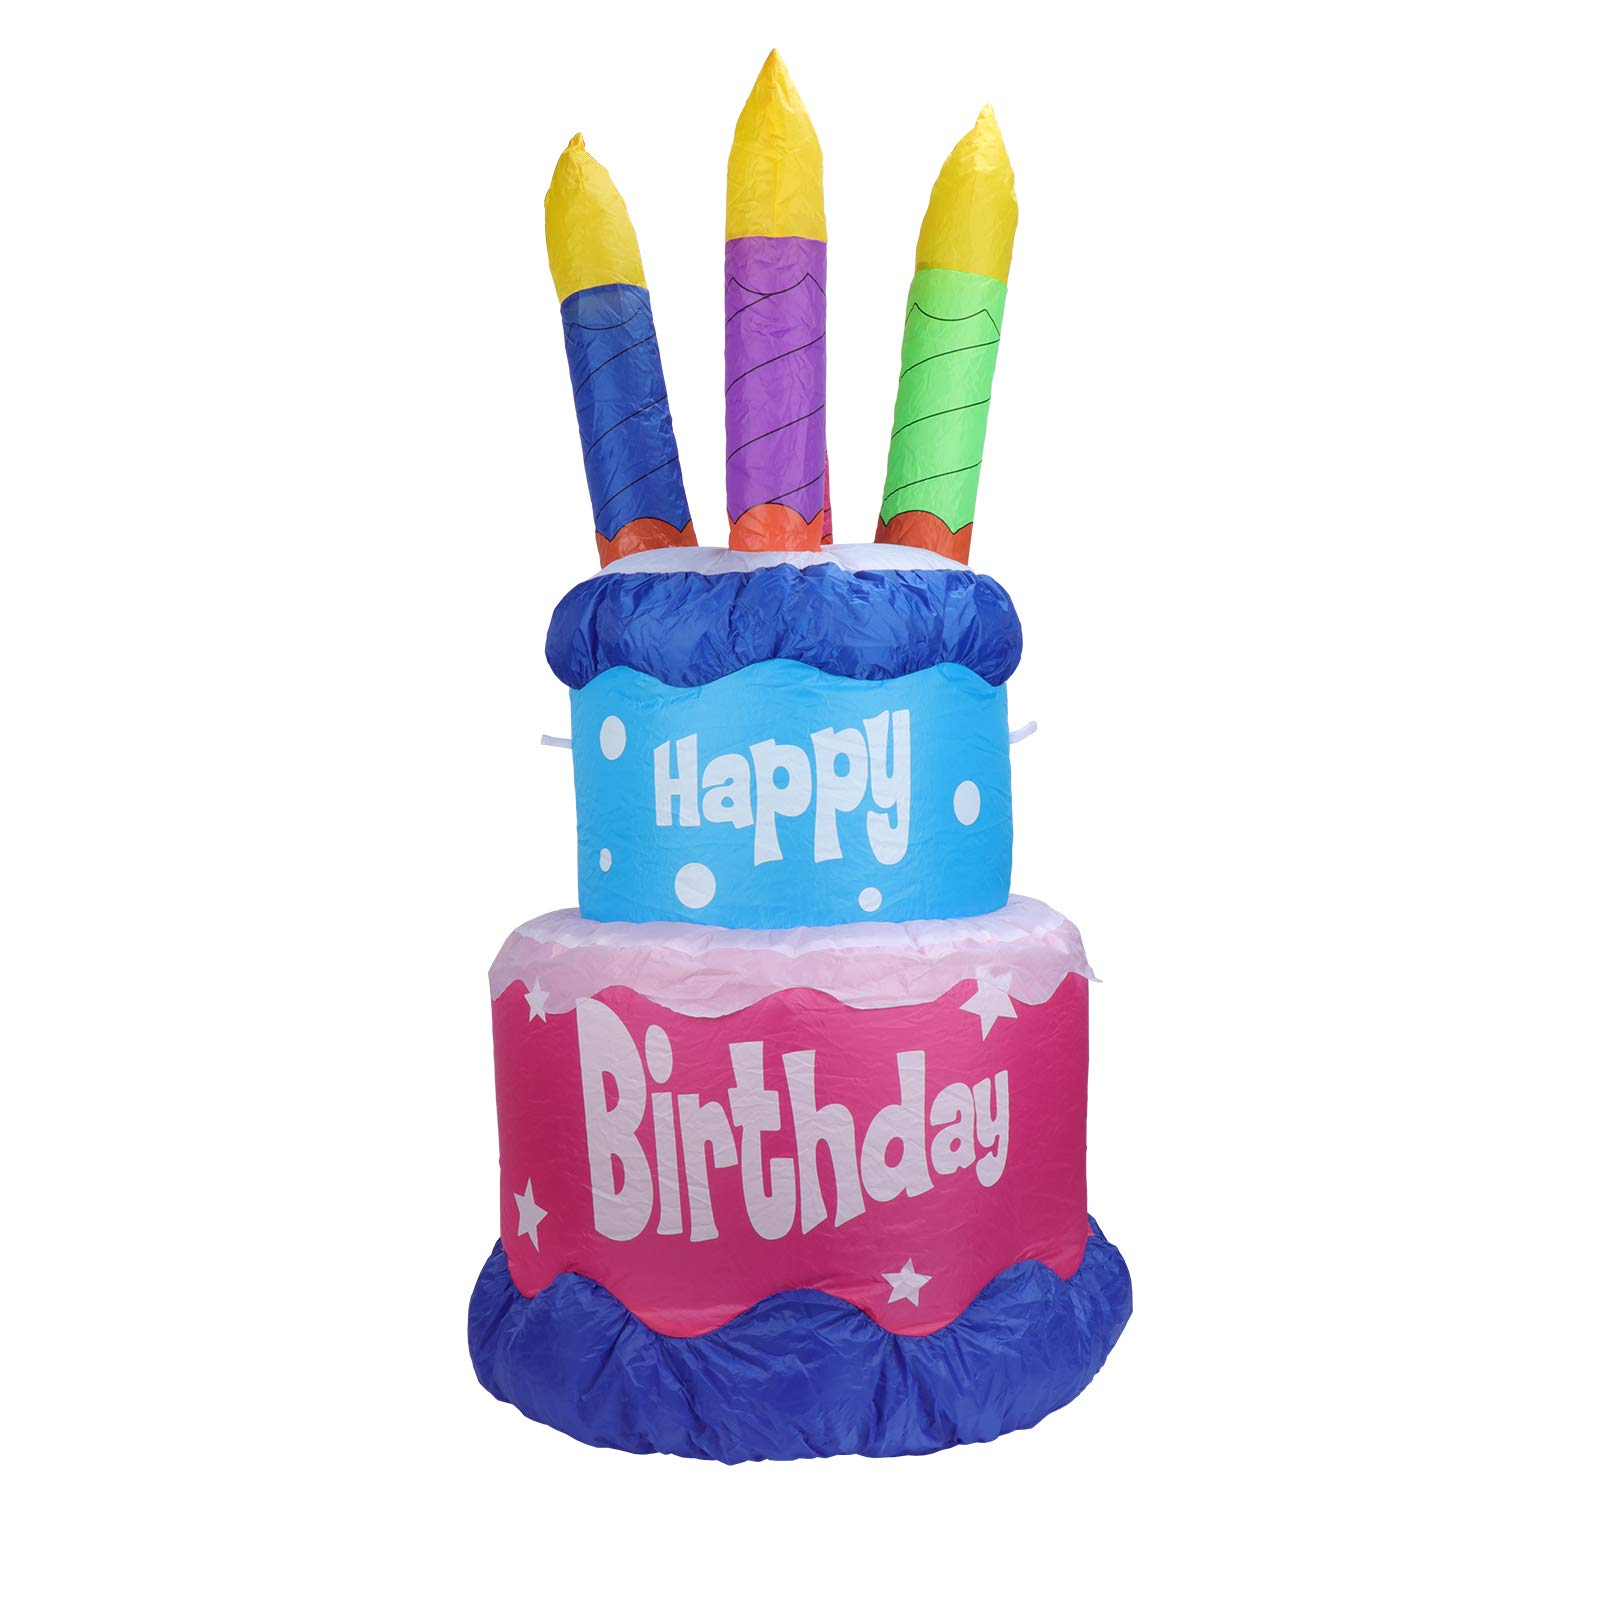 Afirst 4FT Inflatable Birthday Cake - with LED Lights Happy Birthday Gift Blow Up Holiday Decoration for Indoor Outdoor Lawn Yard Home